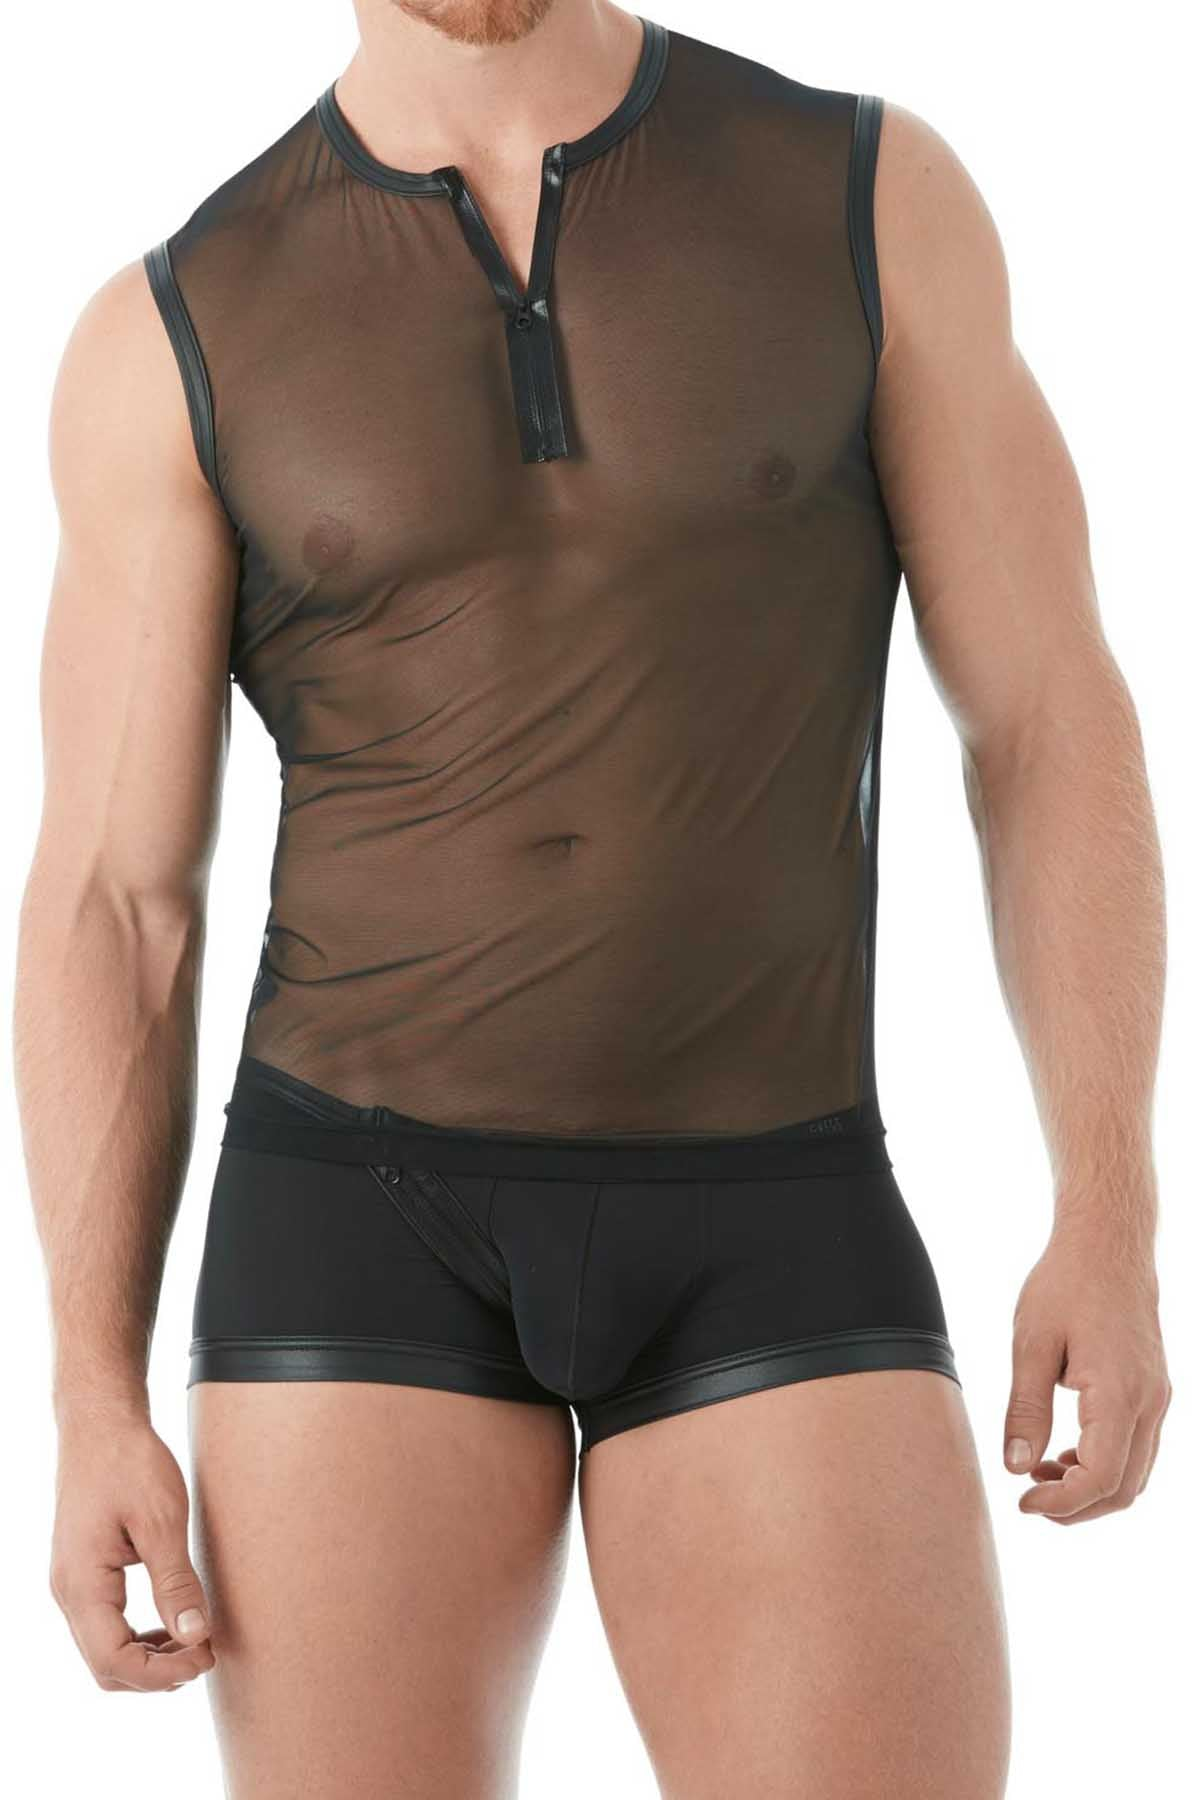 Gregg Homme Black Break-In Muscle Mesh Shirt